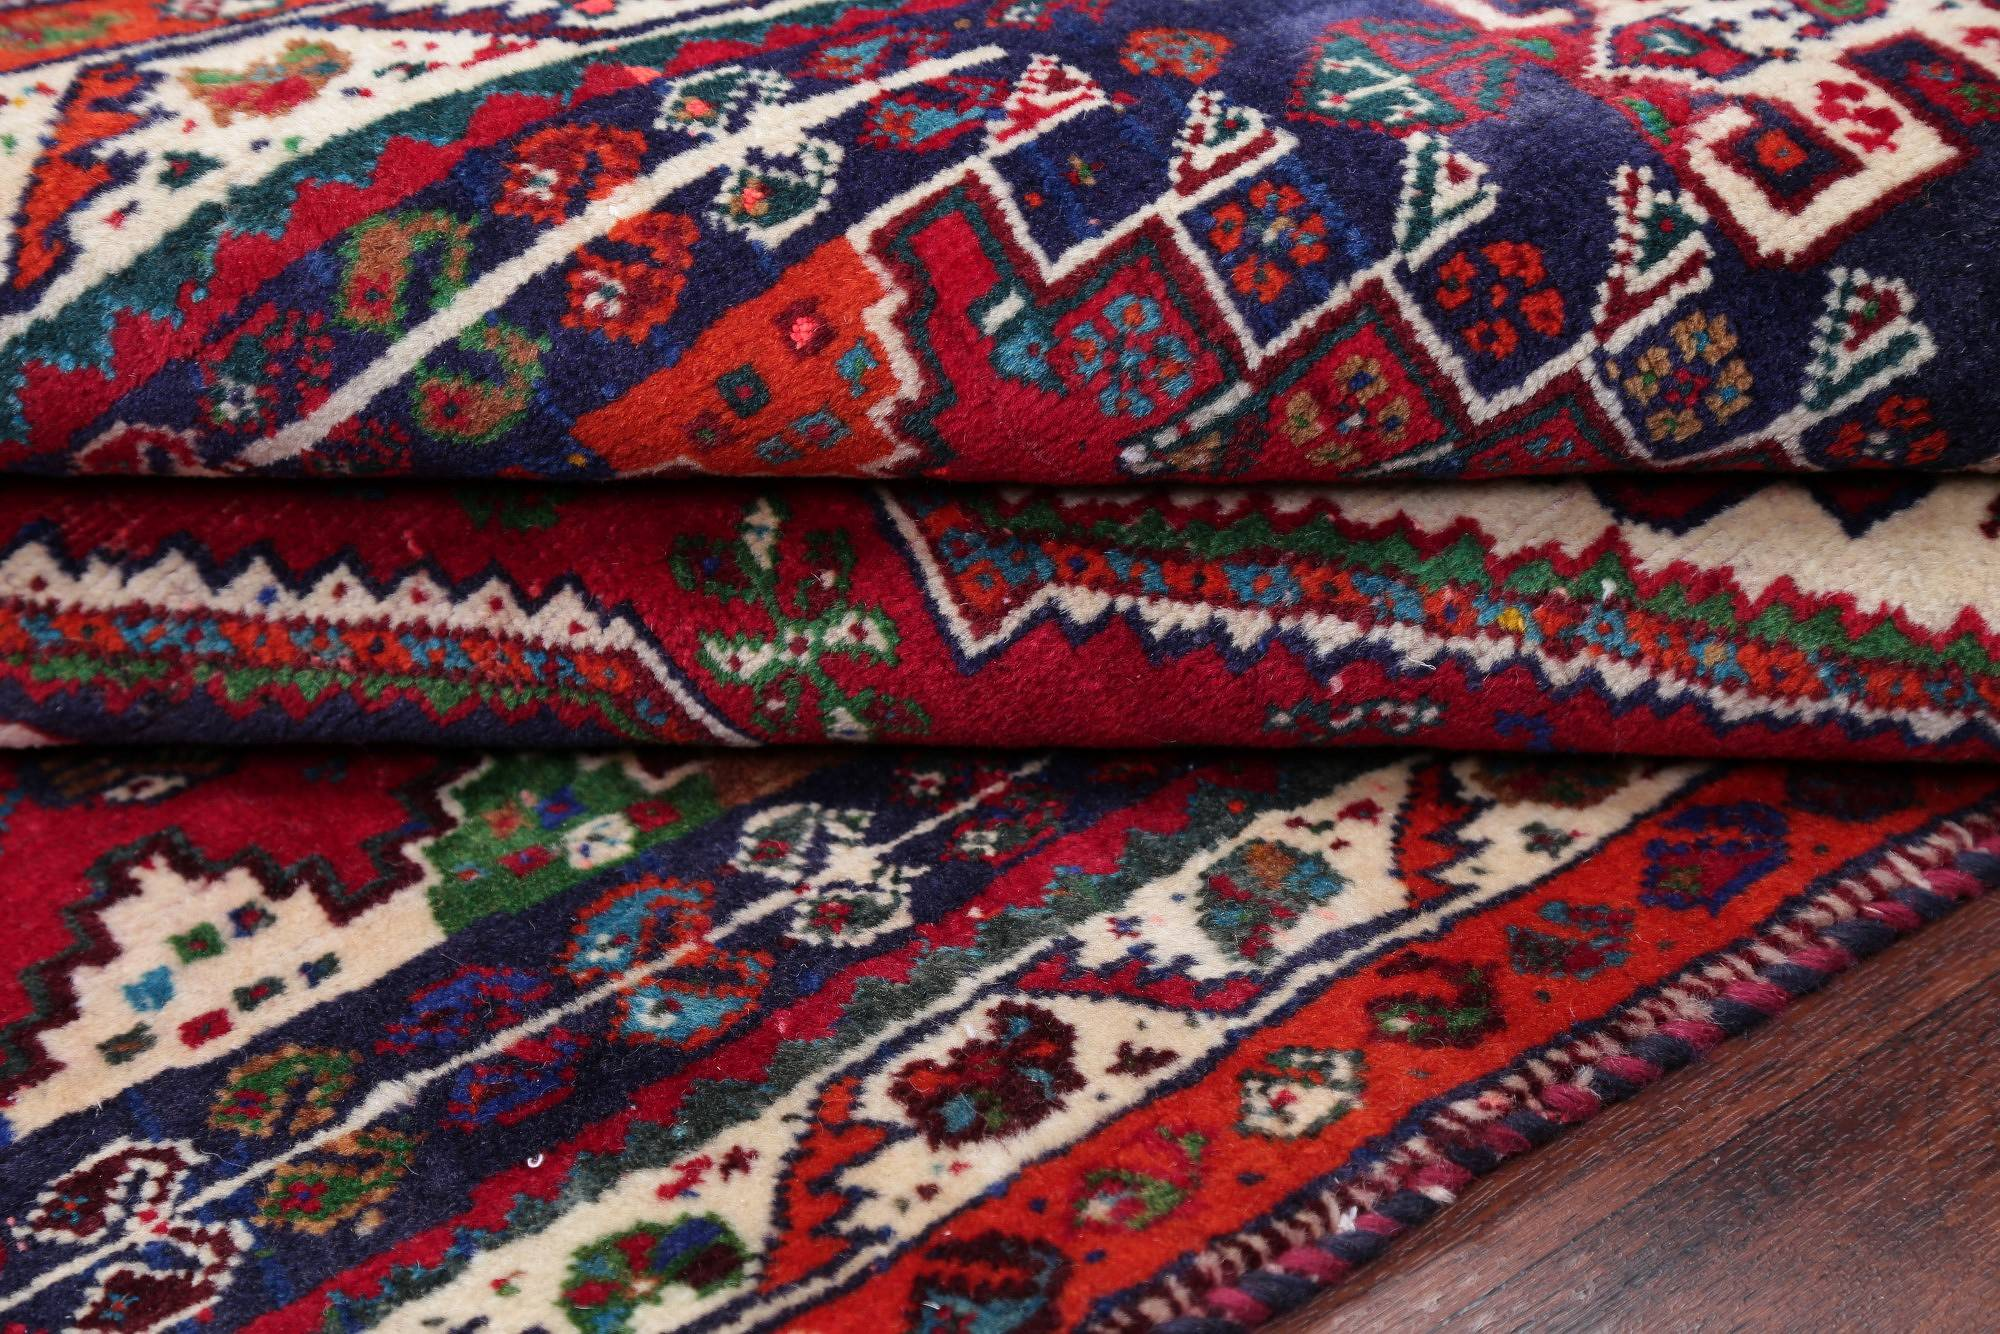 One of a Kind Red Tribal Geometric Abadeh Persian Hand-Knotted 3x5 Wool Rug